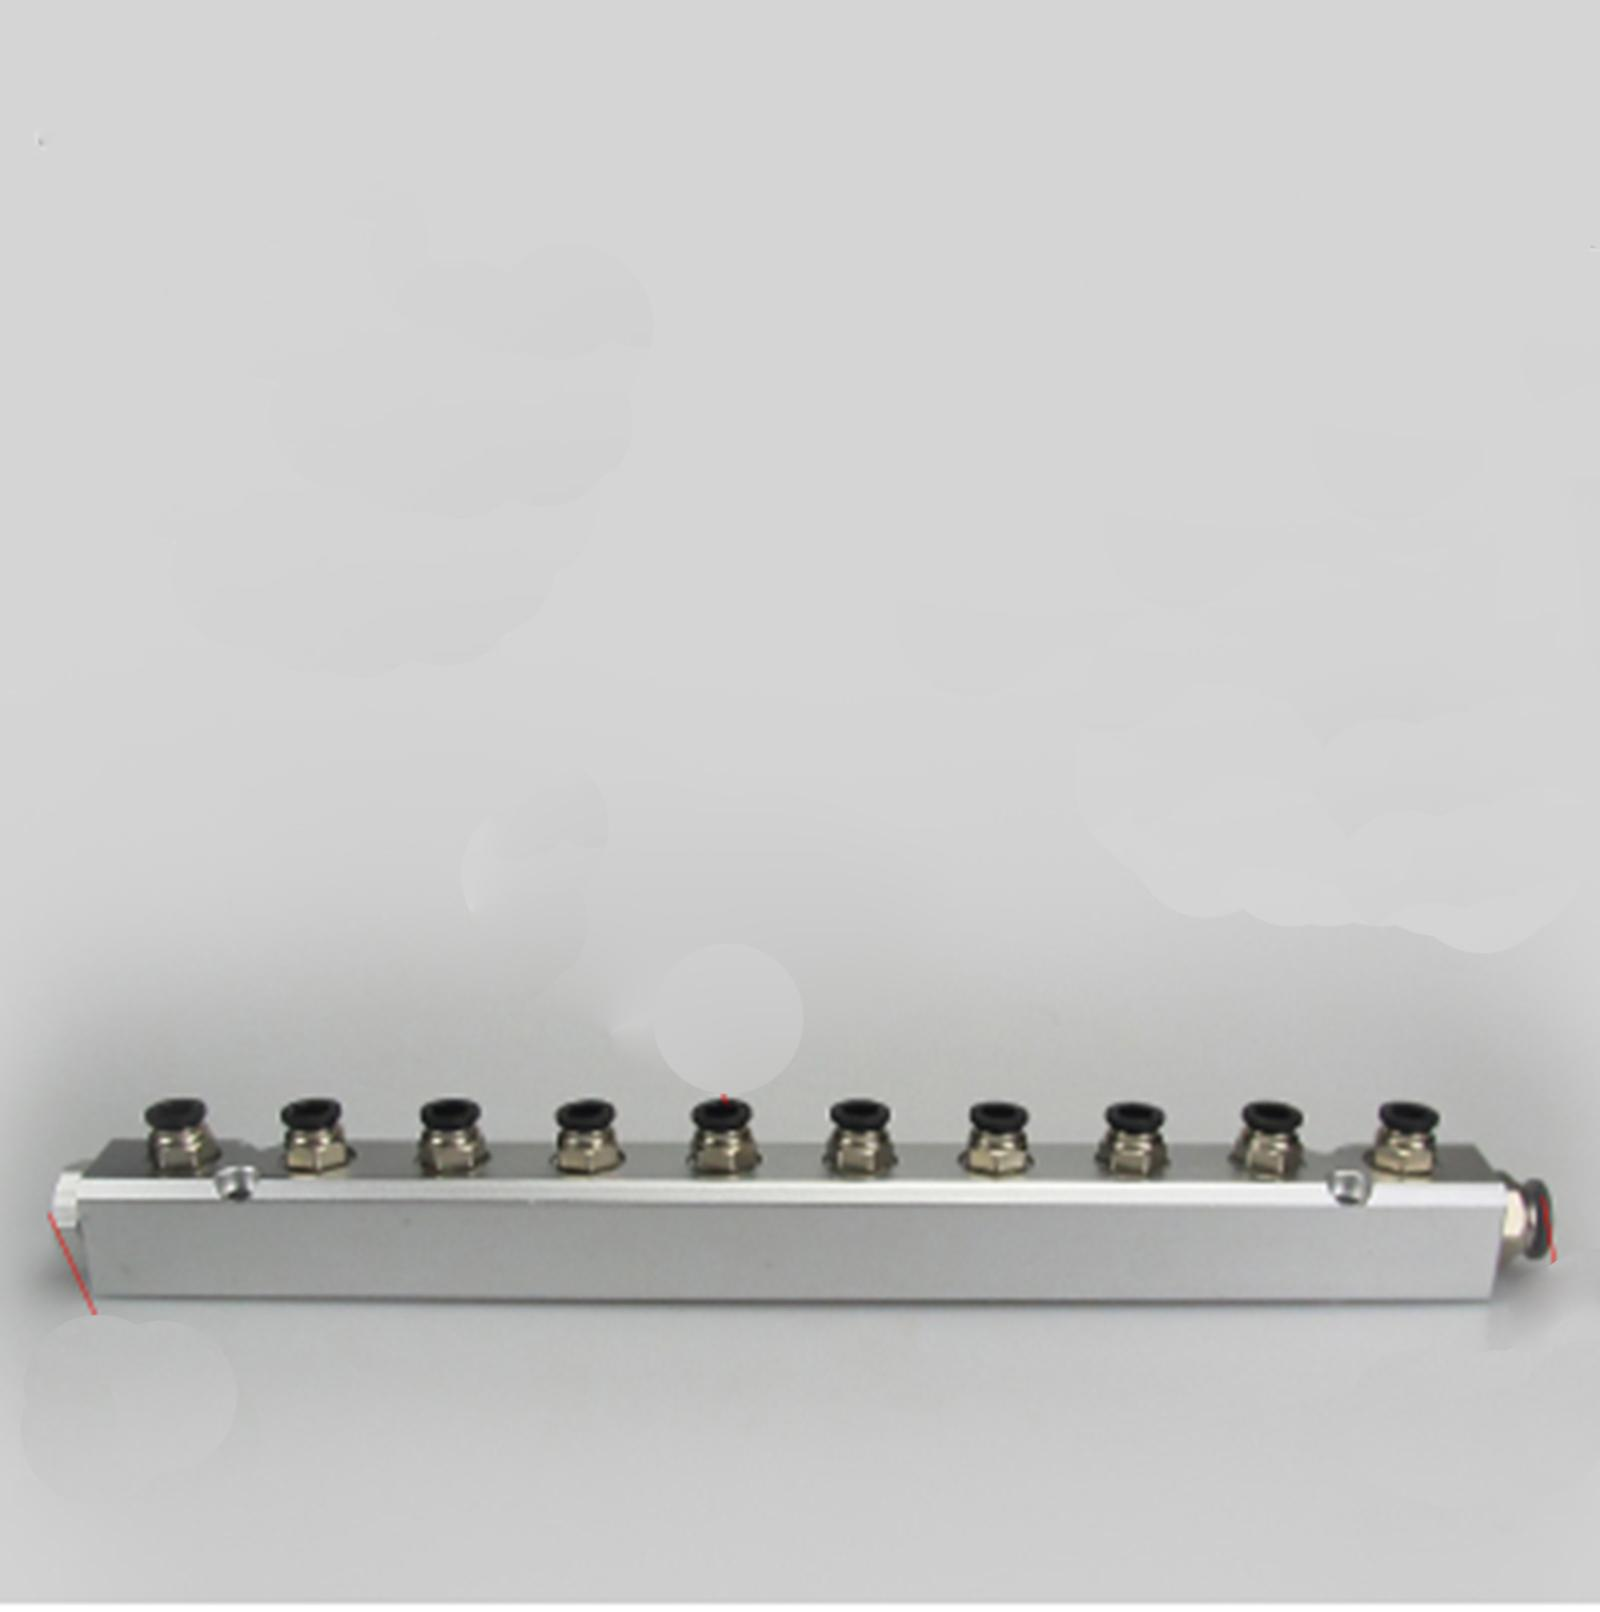 30x30mm G1/4 Out G1/2 In 10 Way Pneumatic Fitting Air Manifold Block Splitter30x30mm G1/4 Out G1/2 In 10 Way Pneumatic Fitting Air Manifold Block Splitter